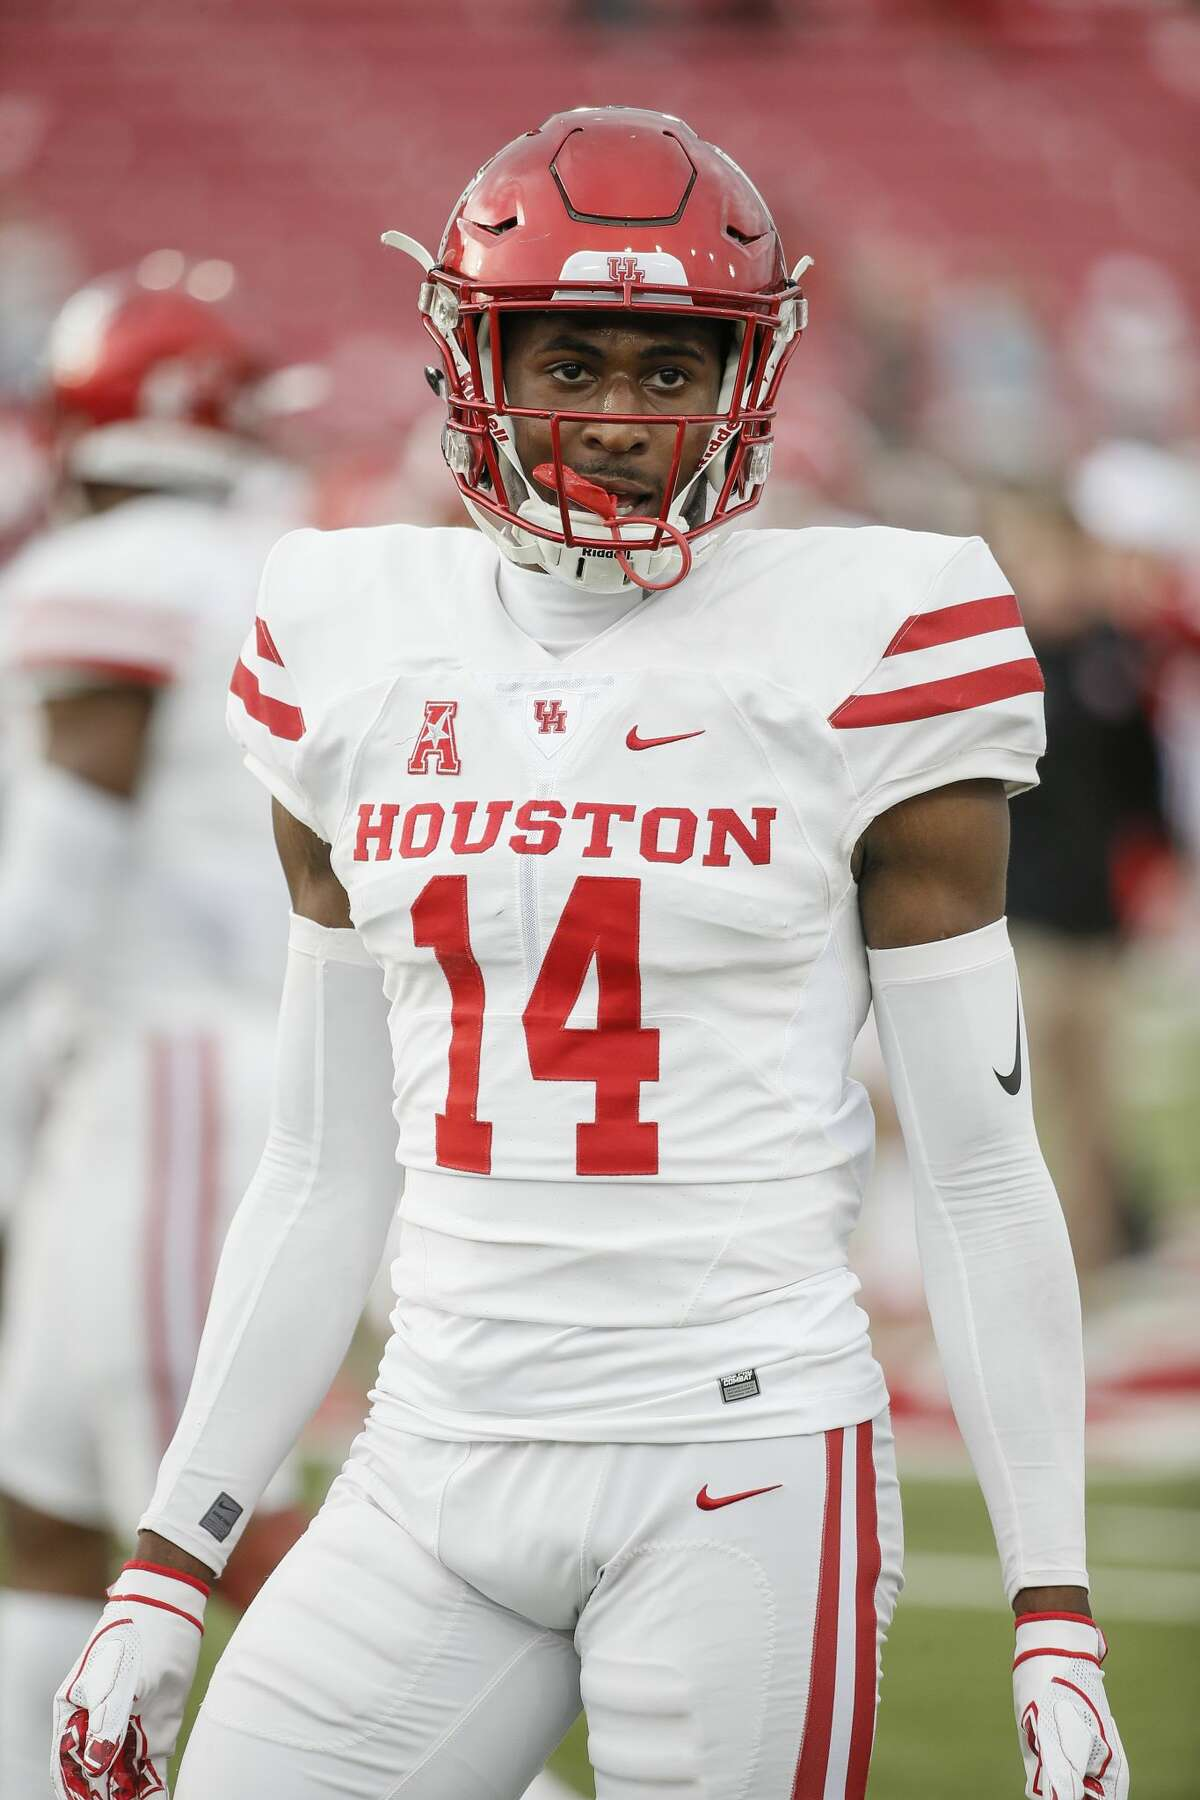 Houston cornerback Isaiah Johnson (14) during warmups before an NCAA college football game against Houston, Saturday, Nov. 3, 2018, in Dallas. (AP Photo/Brandon Wade)